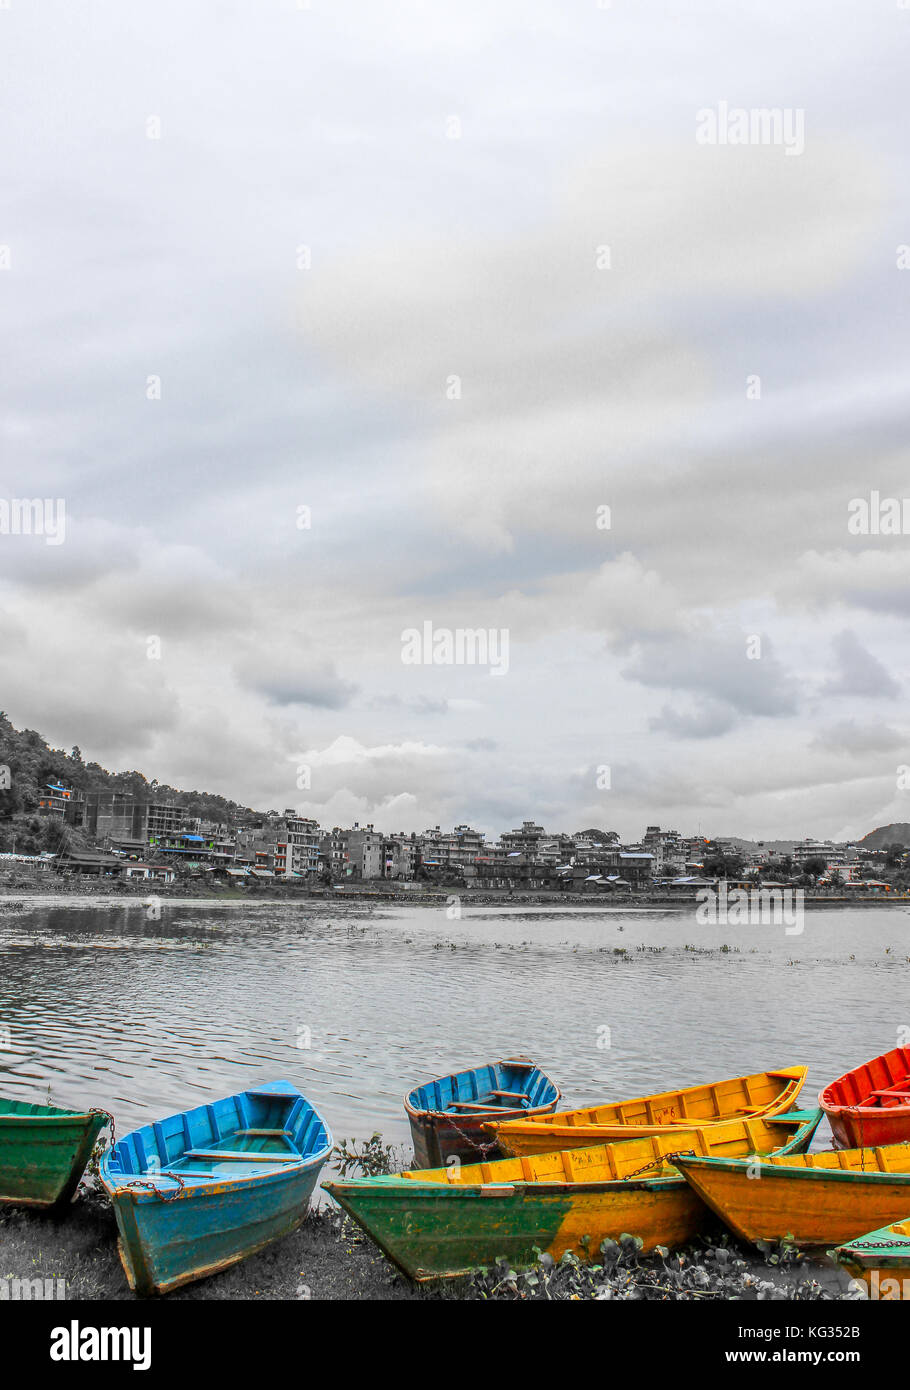 boats on the Pokhara lake in Nepal - Stock Image